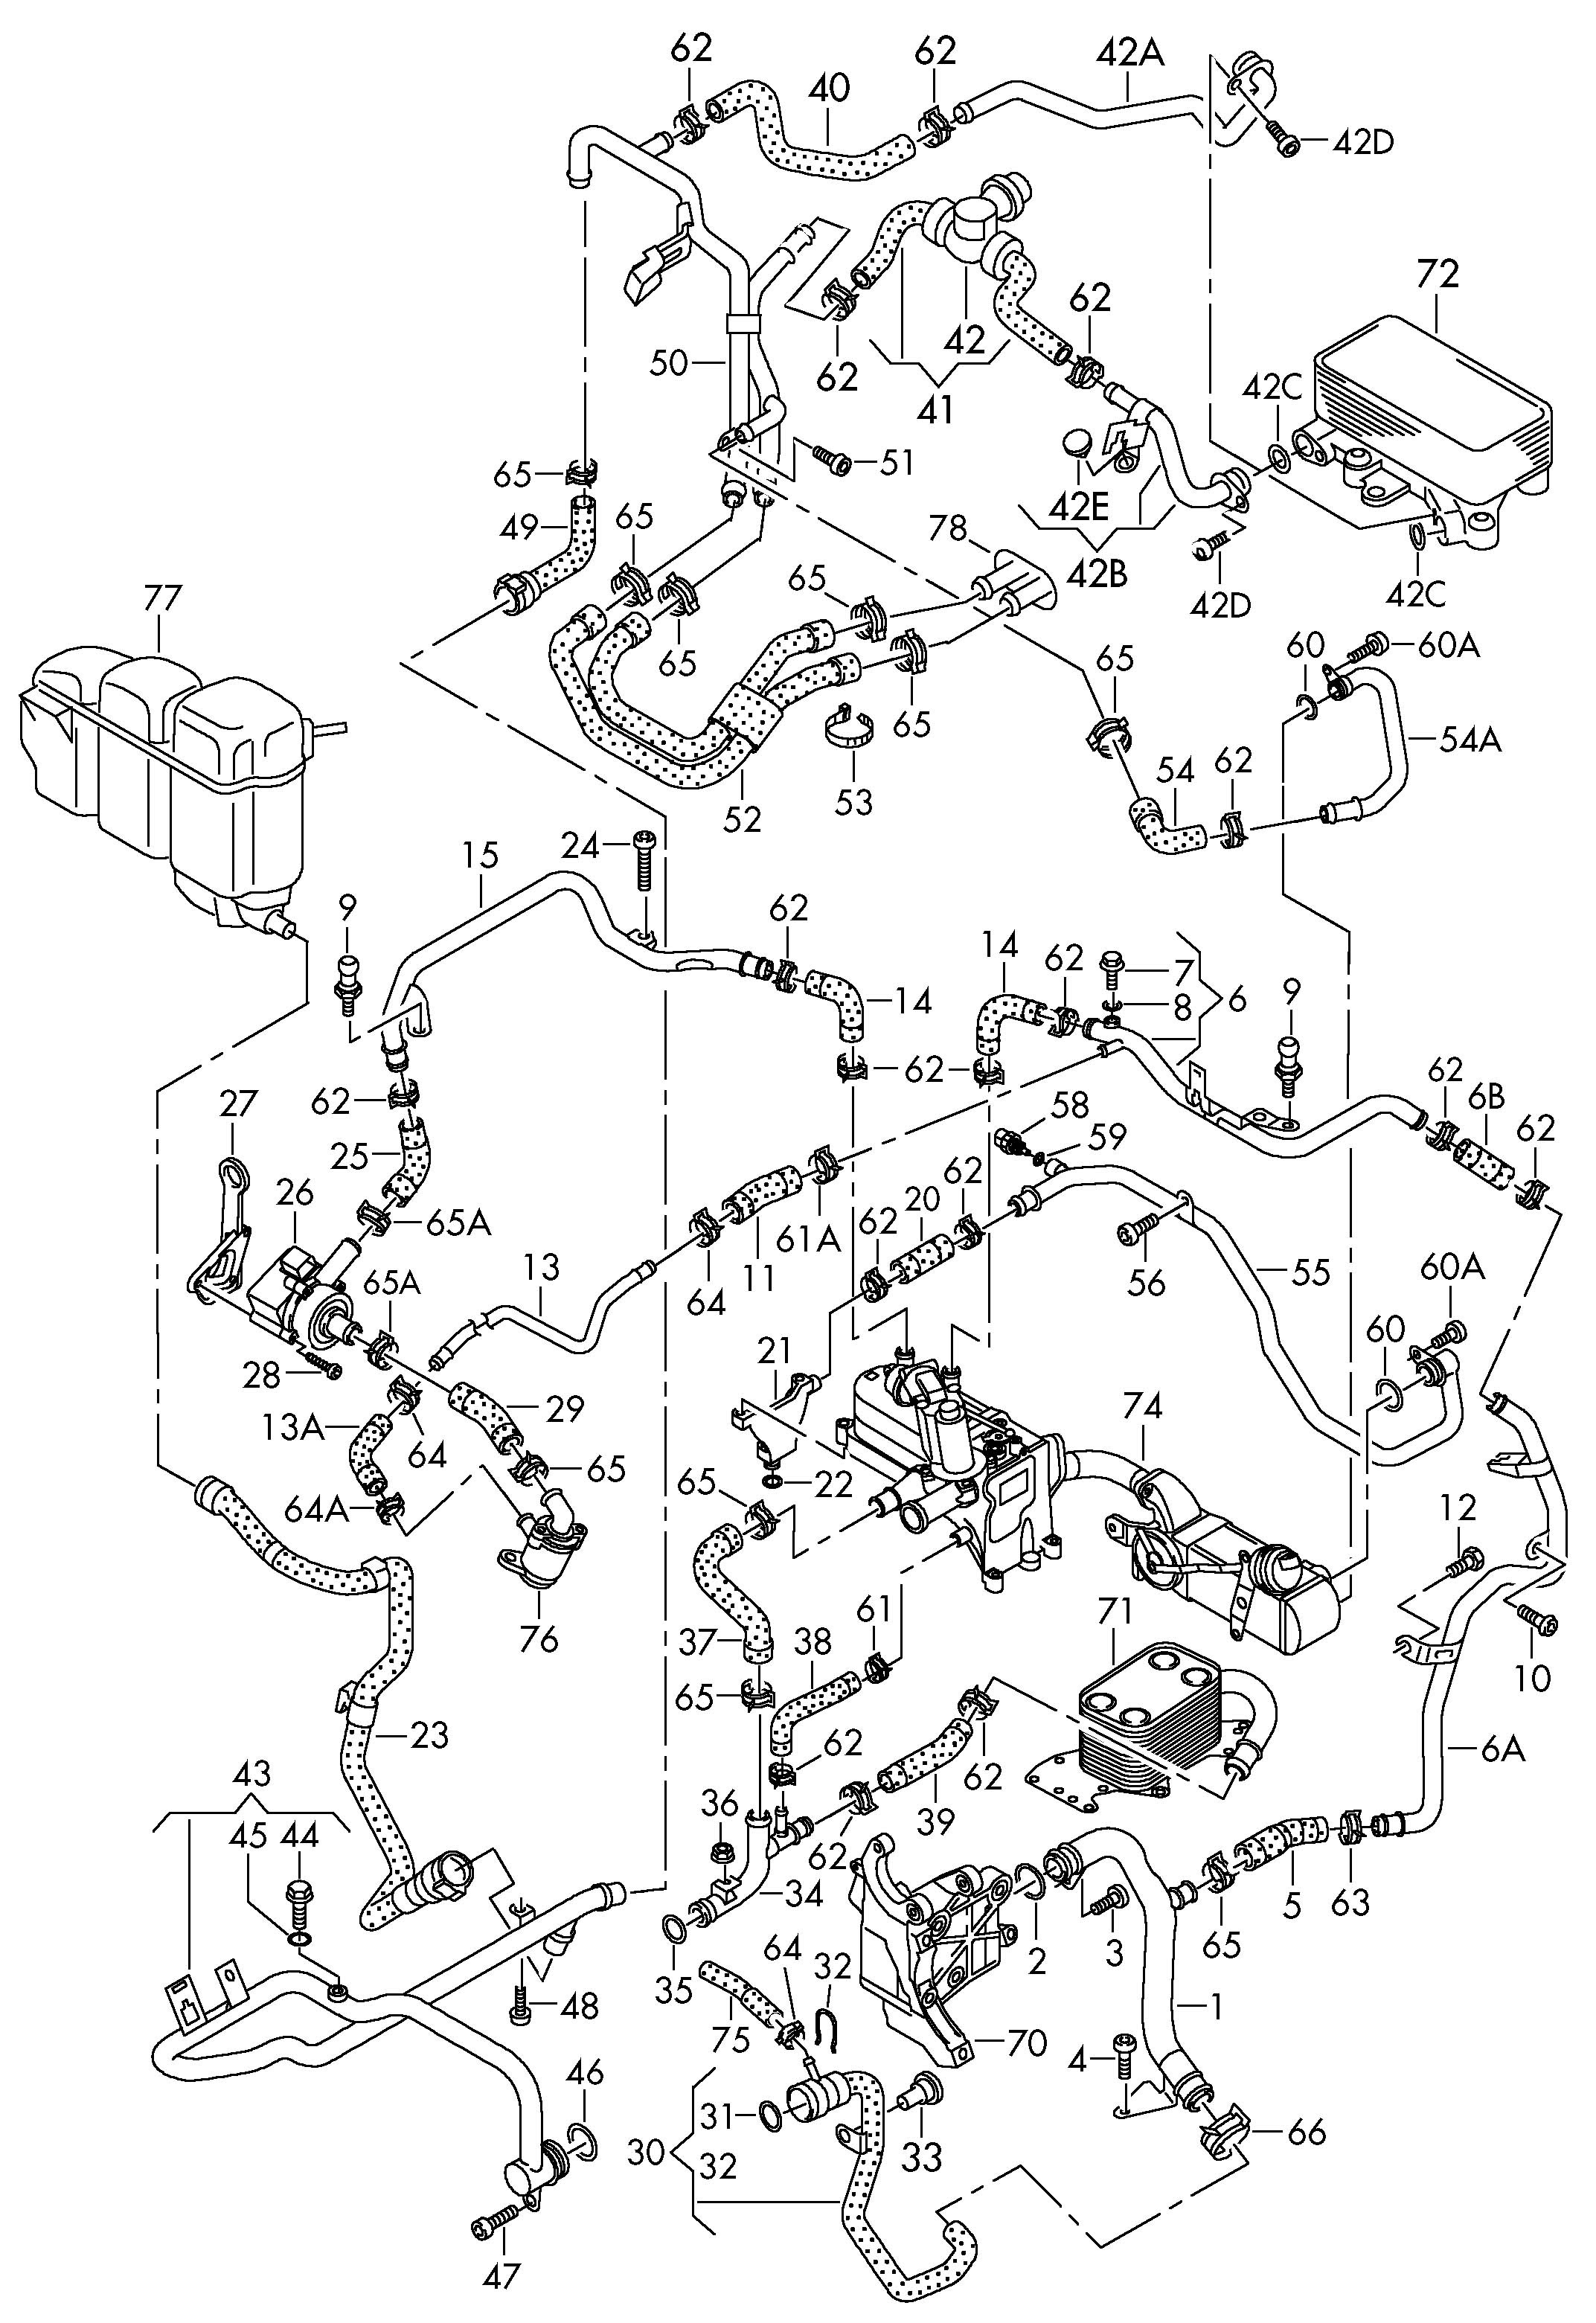 Volkswagen Touareg Heater Valve As Required Use Also Use